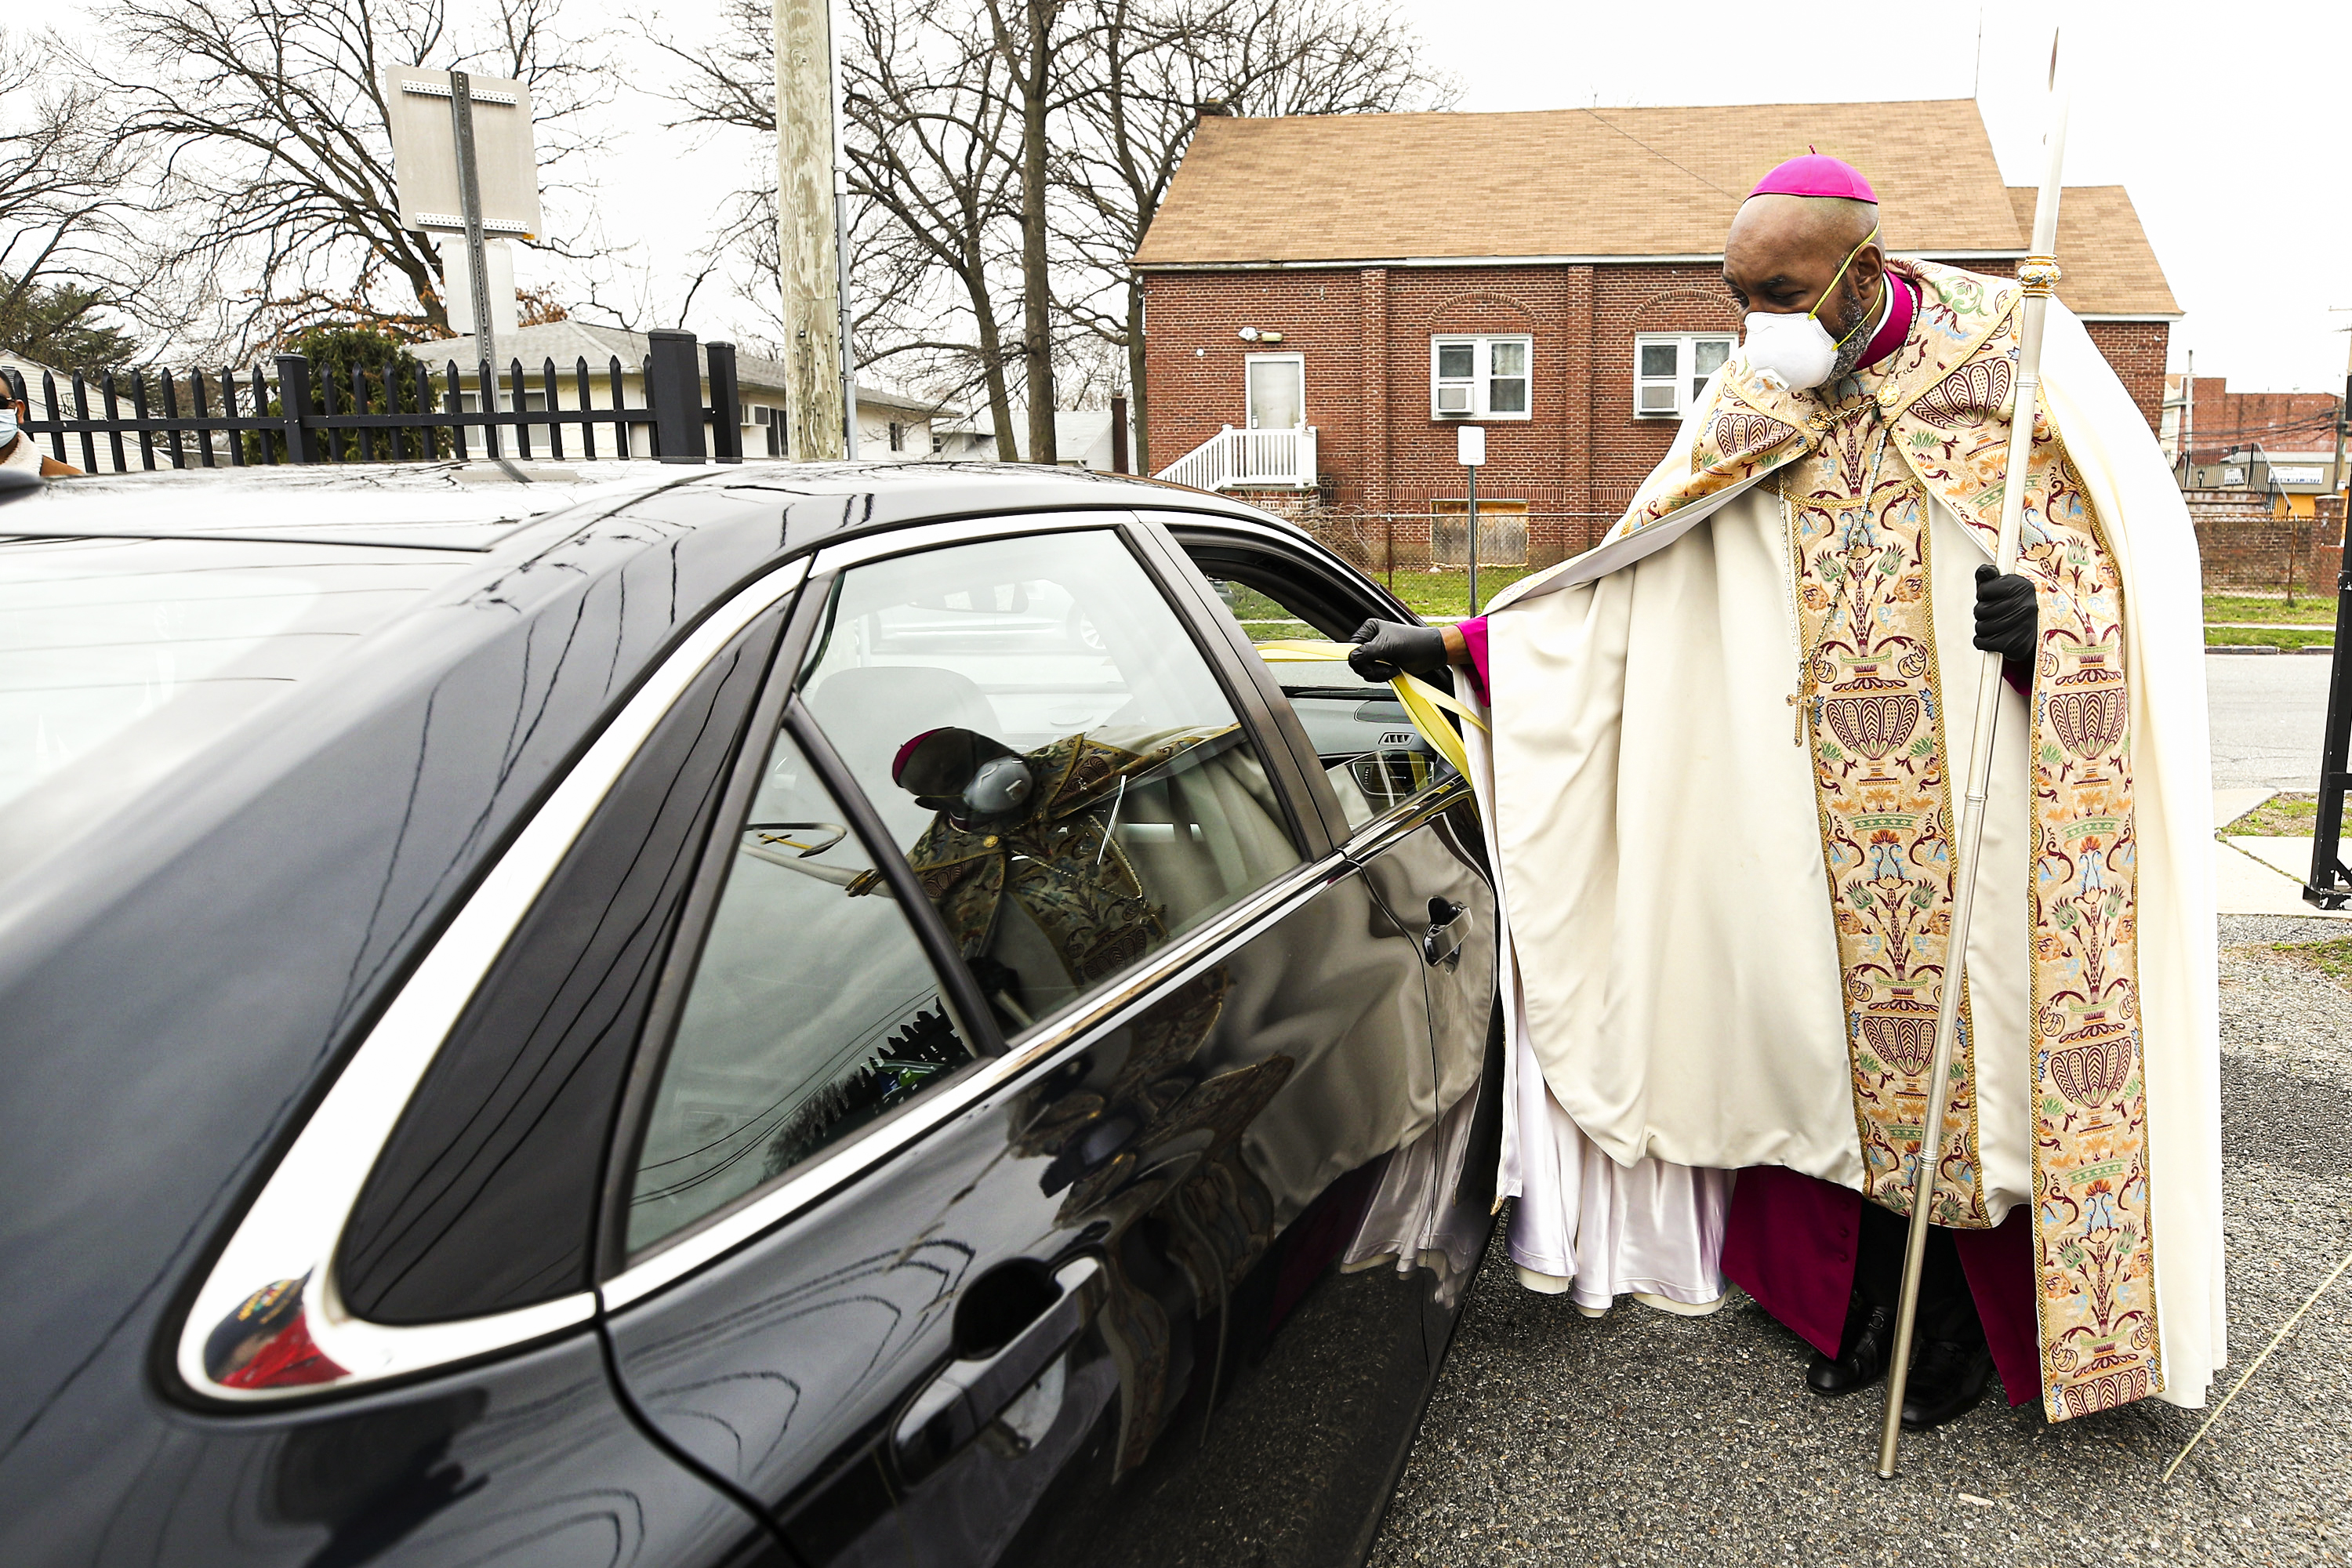 A person wearing clerical garb and a breathing mask stands in the parking lot of a church beside a car while reaching out to the person inside it.